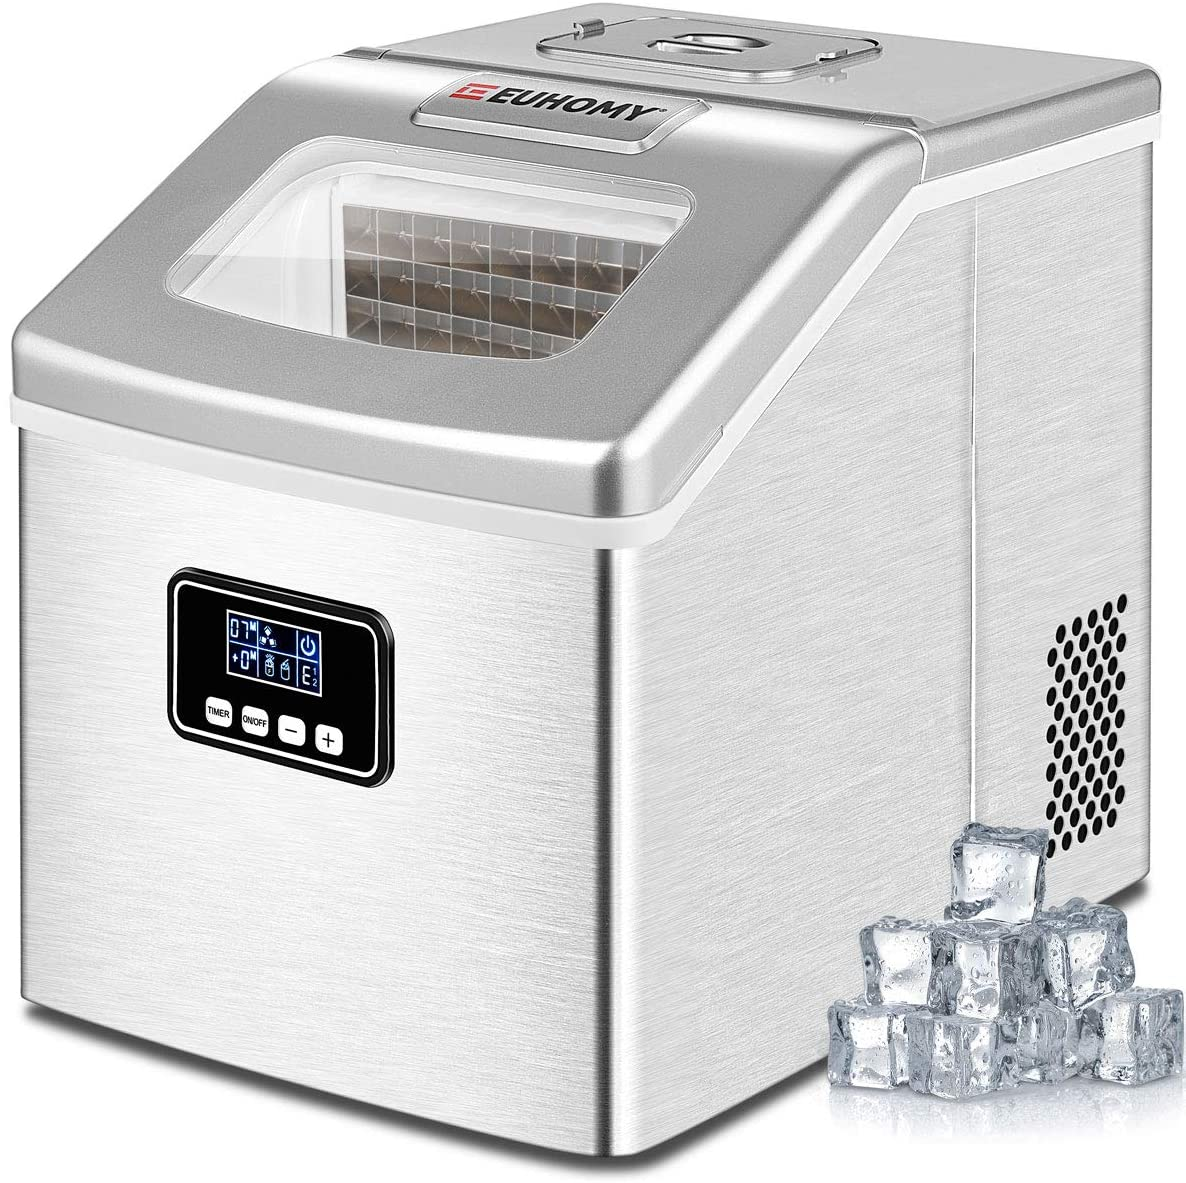 Euhomy Ice Maker Machine Countertop 40lbs 24h Portable Compact Ice Cube Maker With Ice Scoop Basket Perfect For Home Kitchen Office Bar Sliver Walmart Com Walmart Com